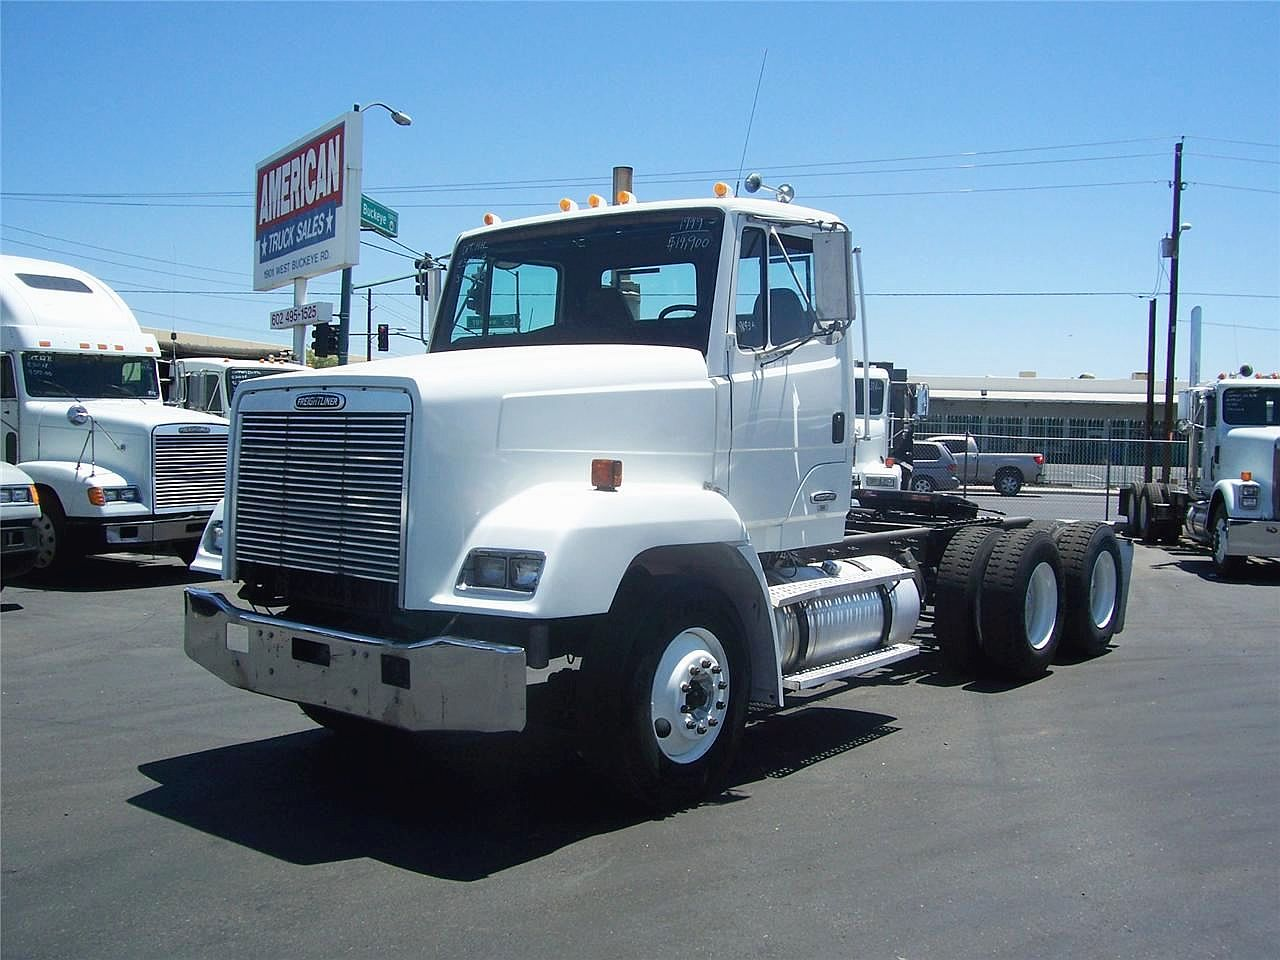 Freightliner flc photo - 2